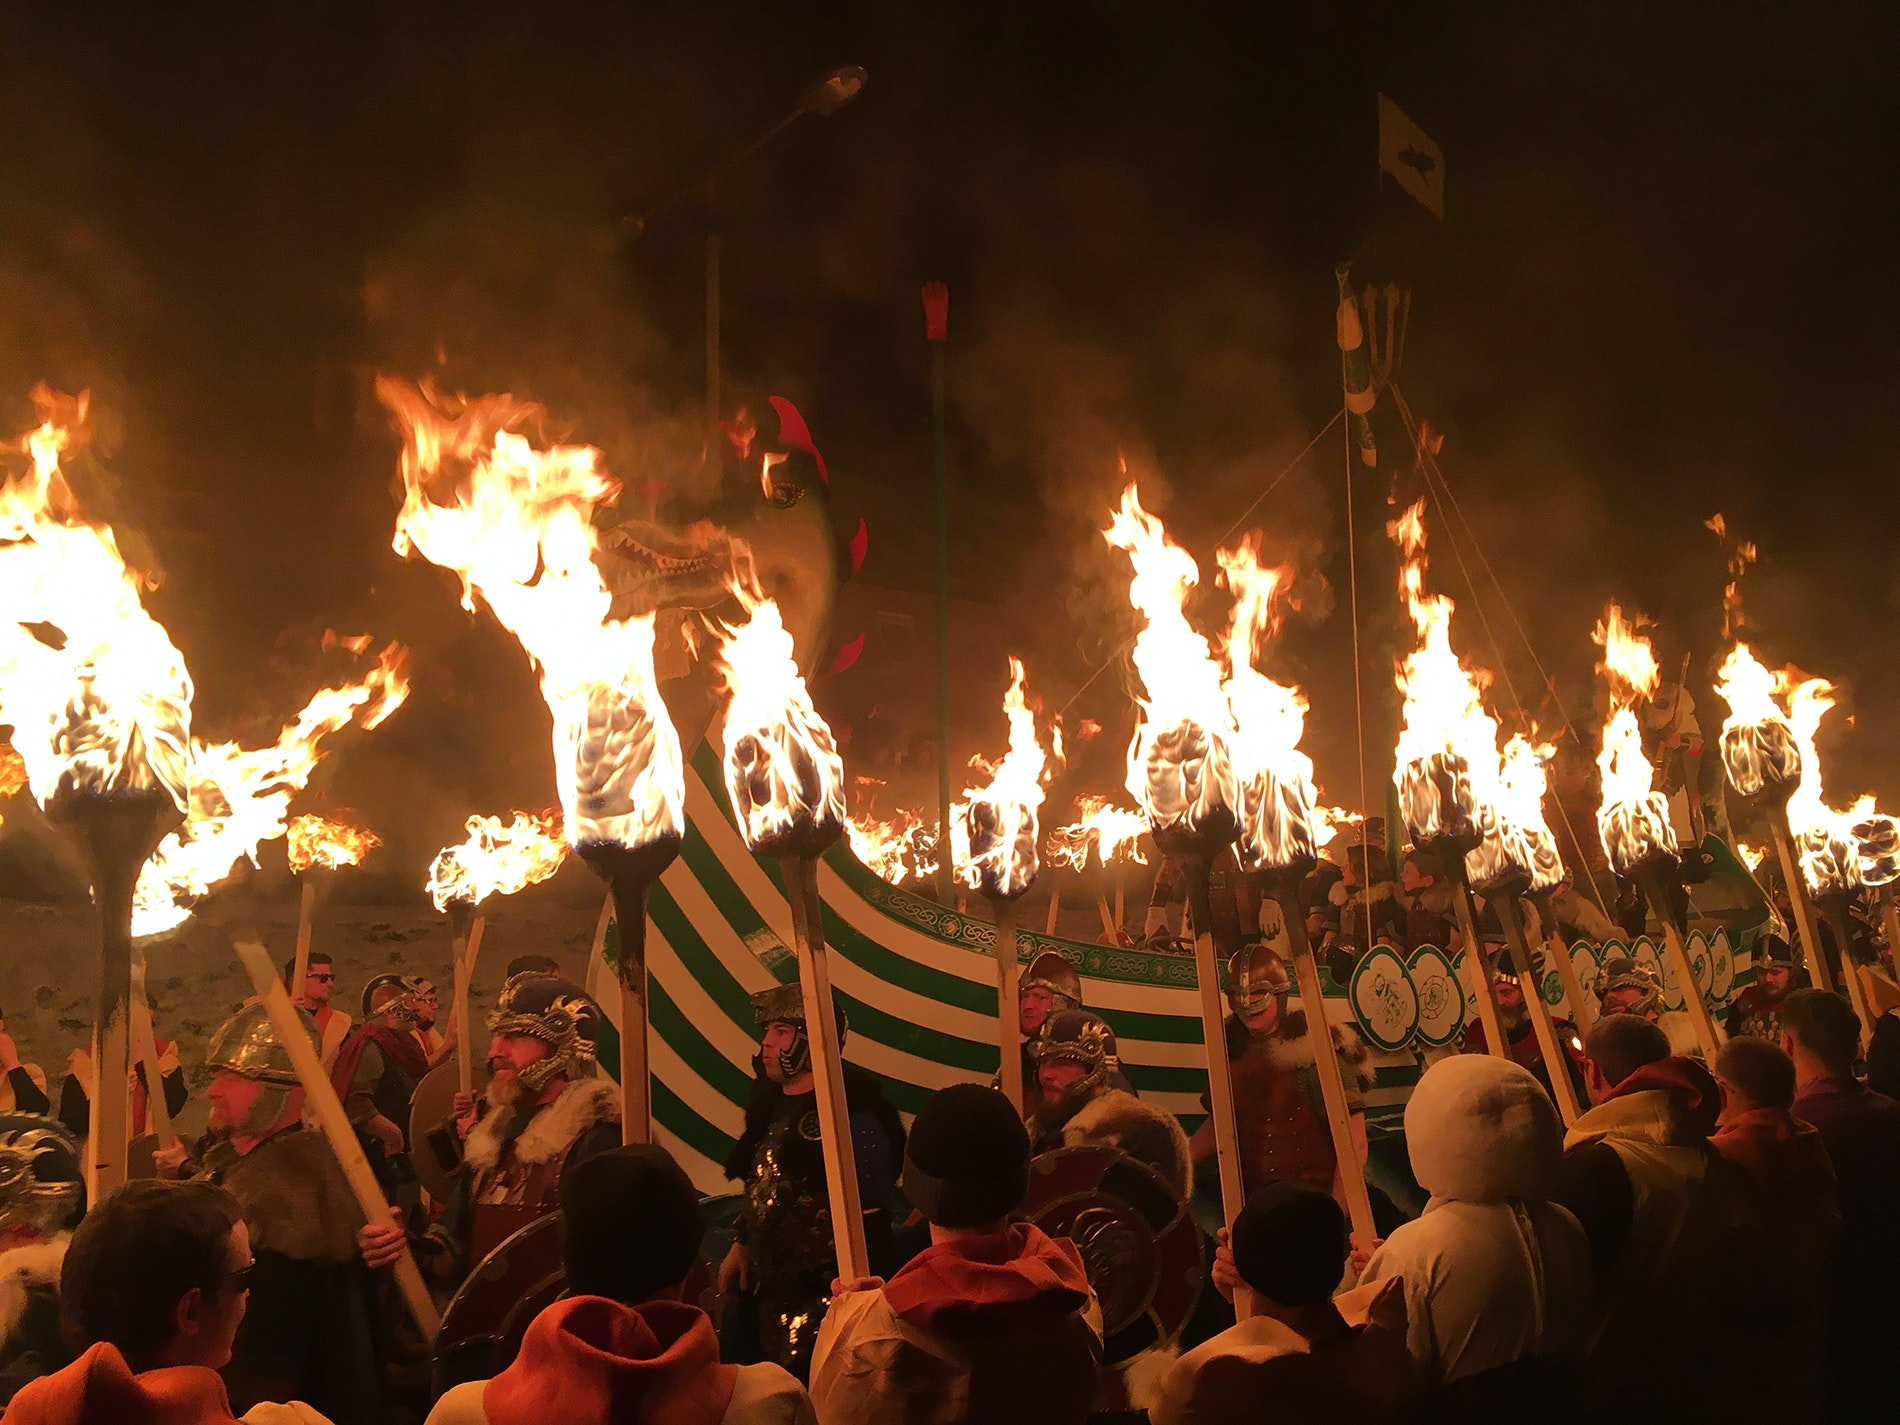 This year, Guizer Jarl John Nicolson led the fiery Up Helly Aa celebration.